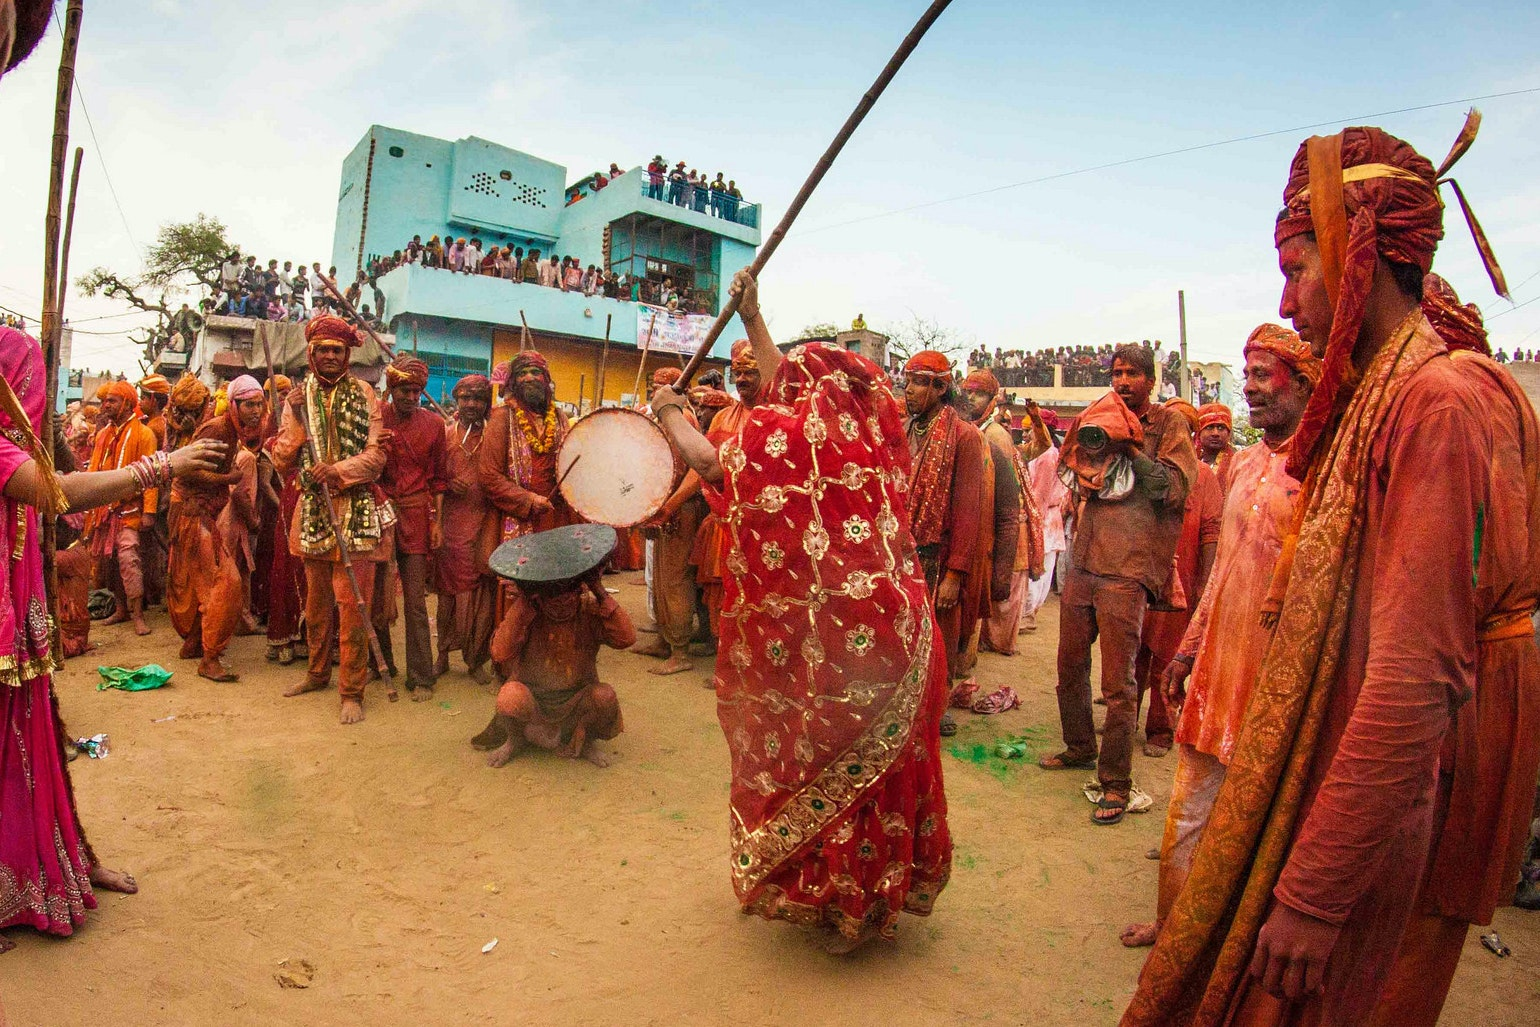 The unique mythology-inspired Lathmaar Holi tradition sees townswomen in Barsana and Nandgaon pretend to hit the townsmen with lathis, or sticks.